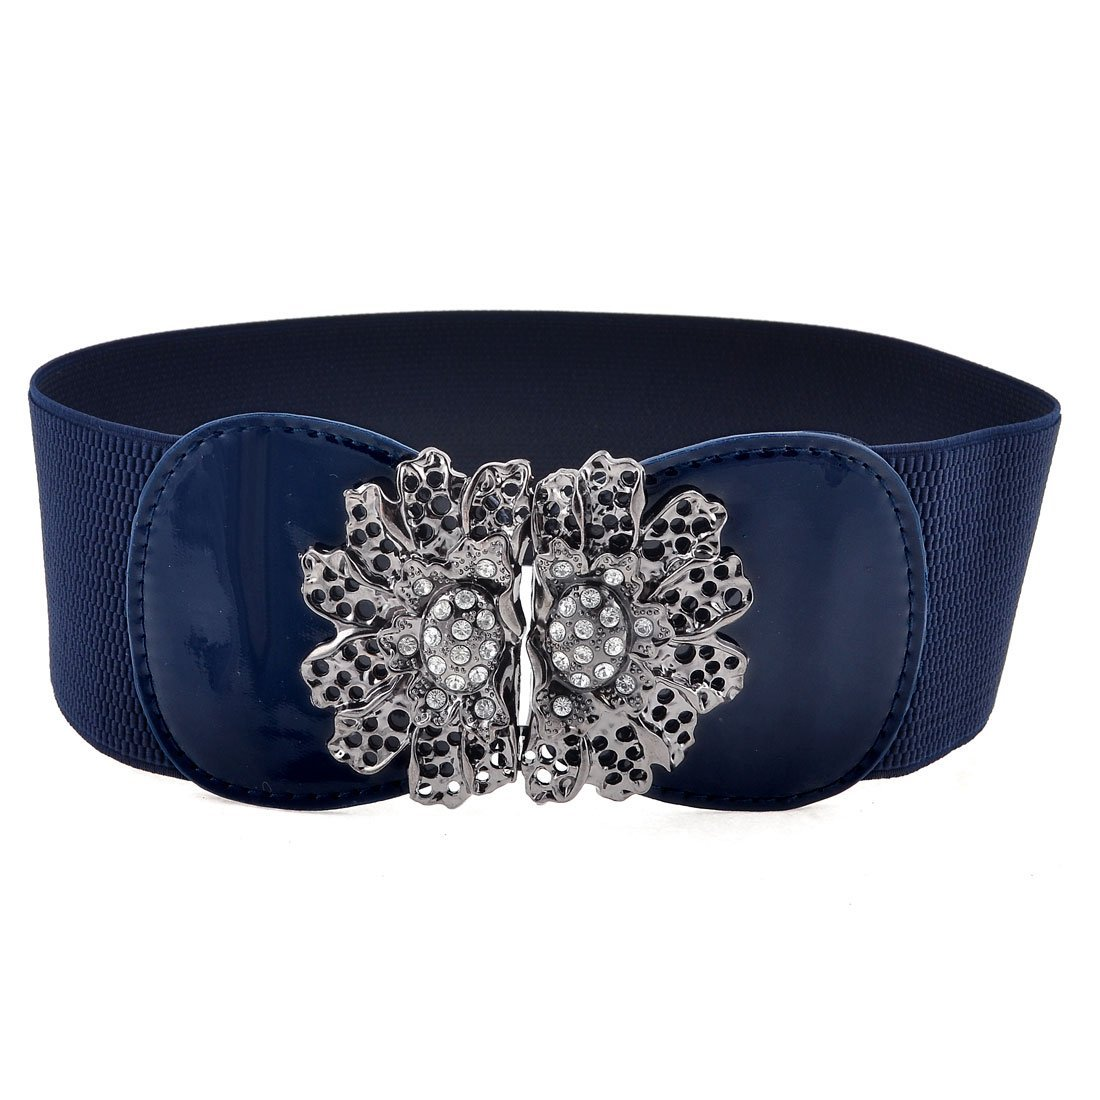 Free shipping on high-waist belts for women at cybergamesl.ga Shop high-waist belts in fabric, leather and more. Totally free shipping and returns.